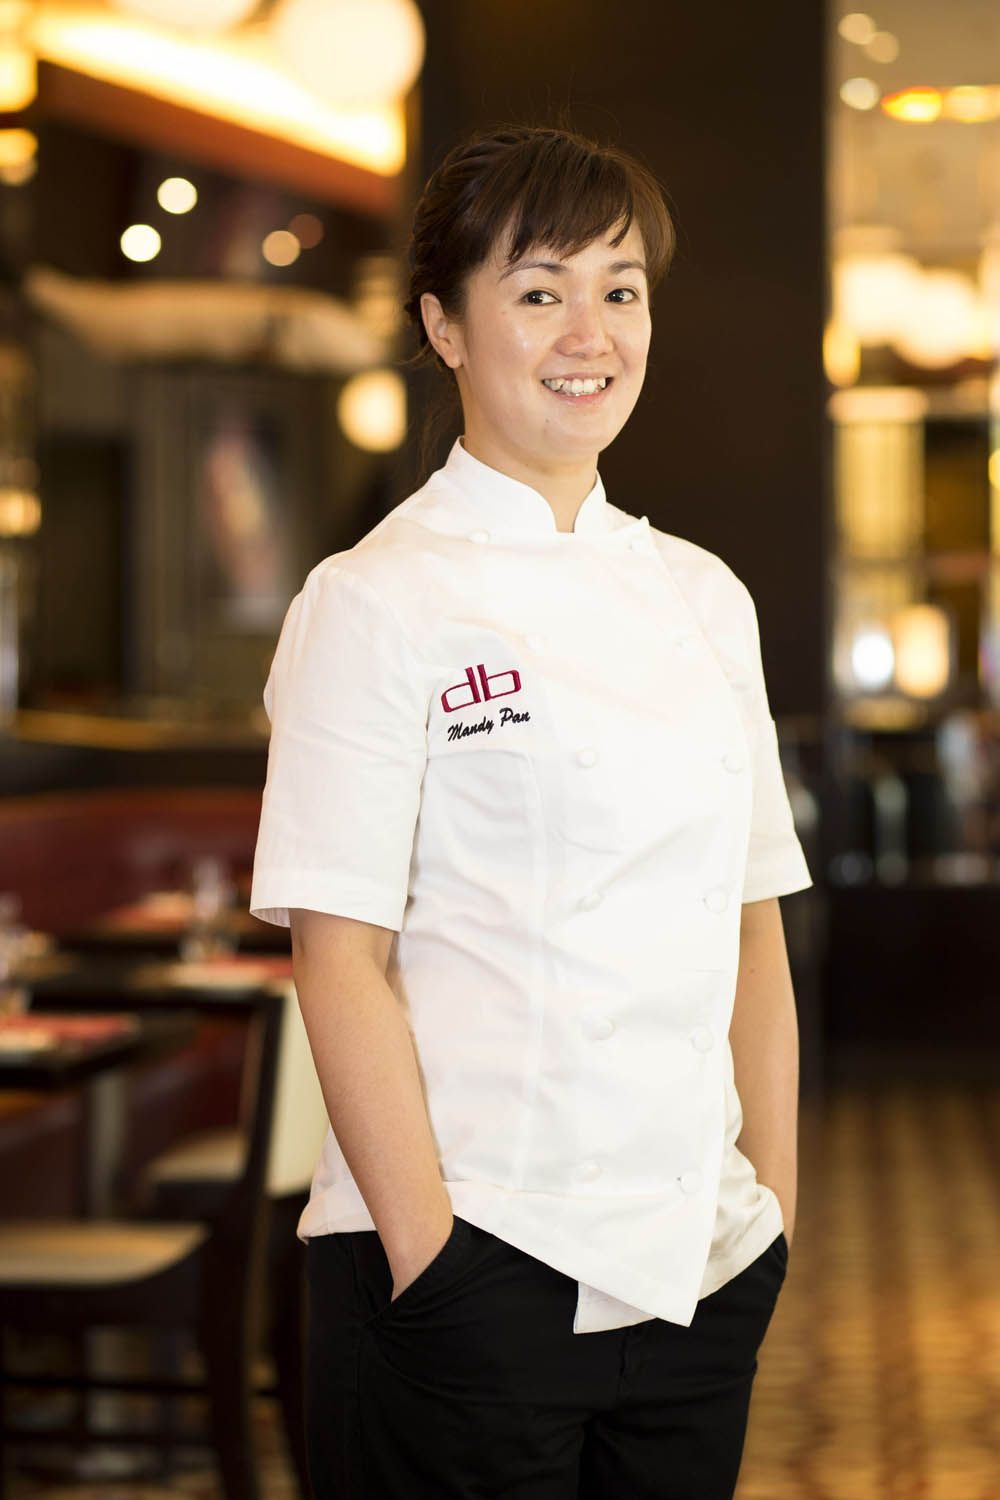 5 Minutes With… Mandy Pan, Db Bistro & Bar's Executive Pastry Chef